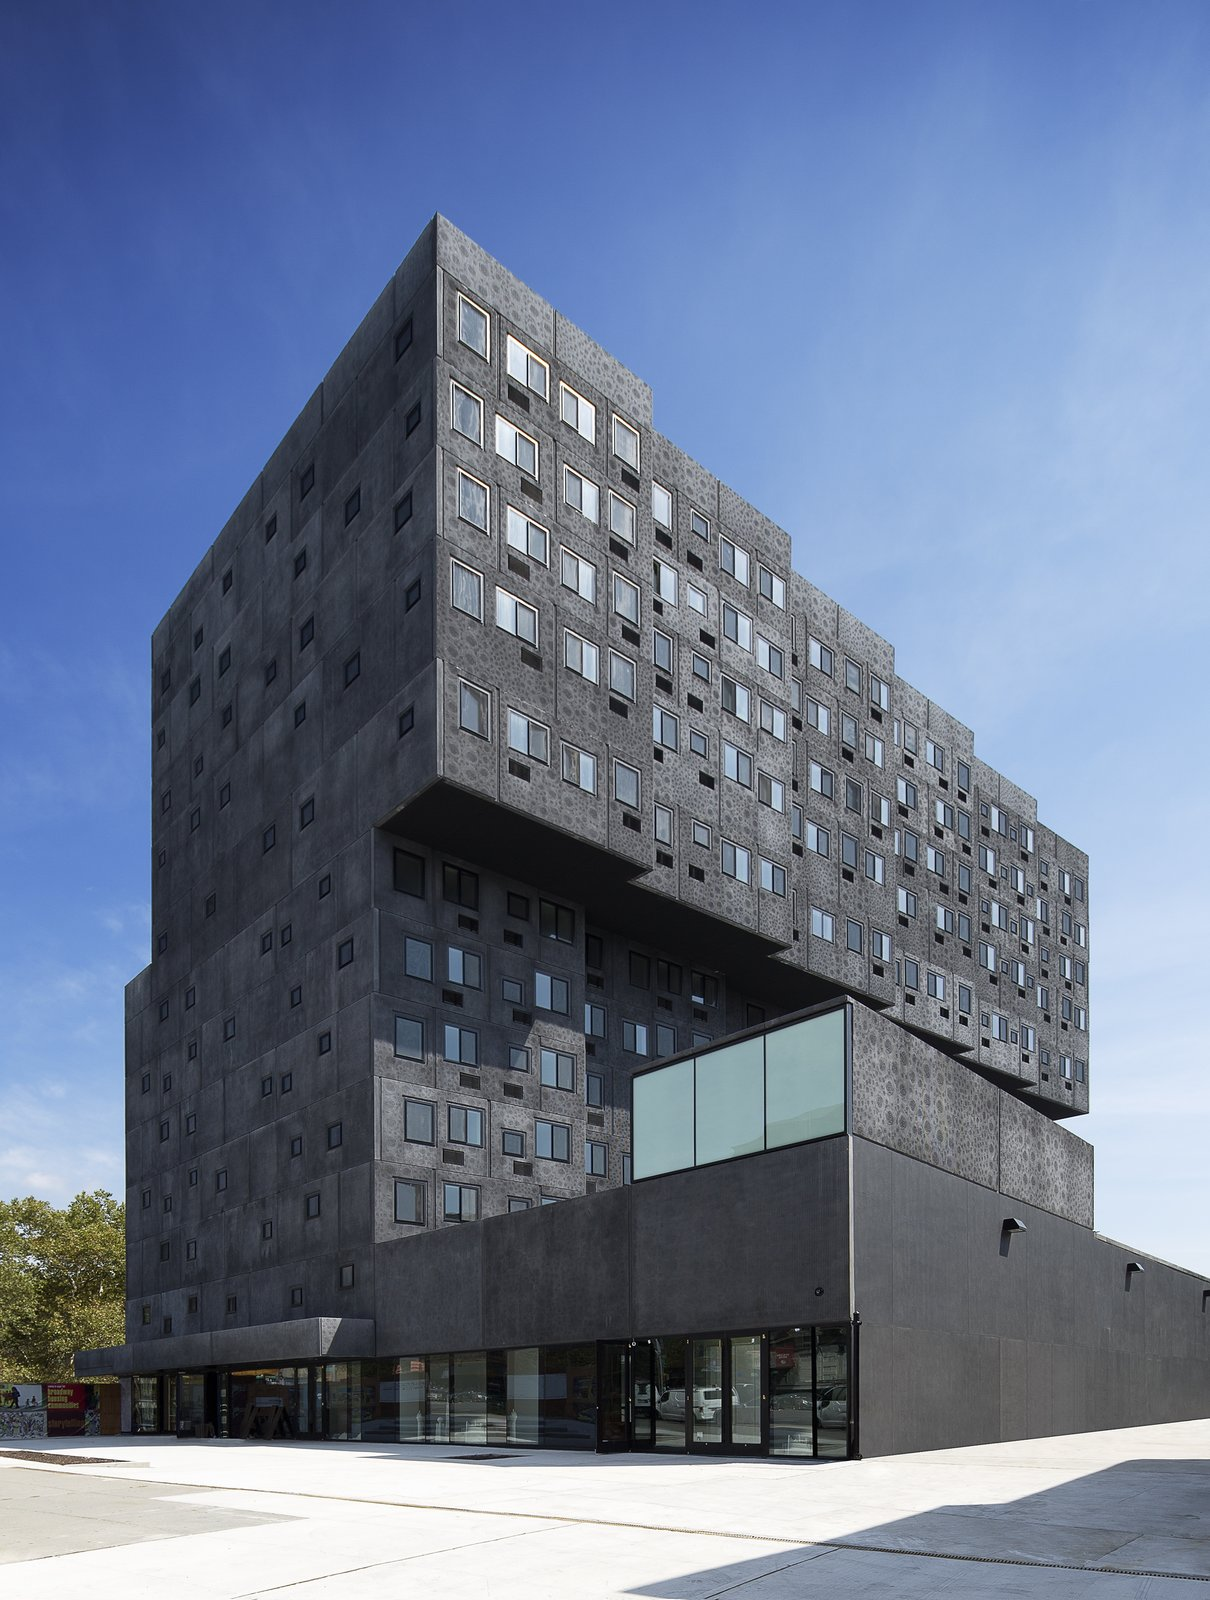 Sugar Hill Housing designed by David Adjaye  Photo 3 of 4 in Archtober Itinerary: Benjamin Prosky, Assoc. AIA